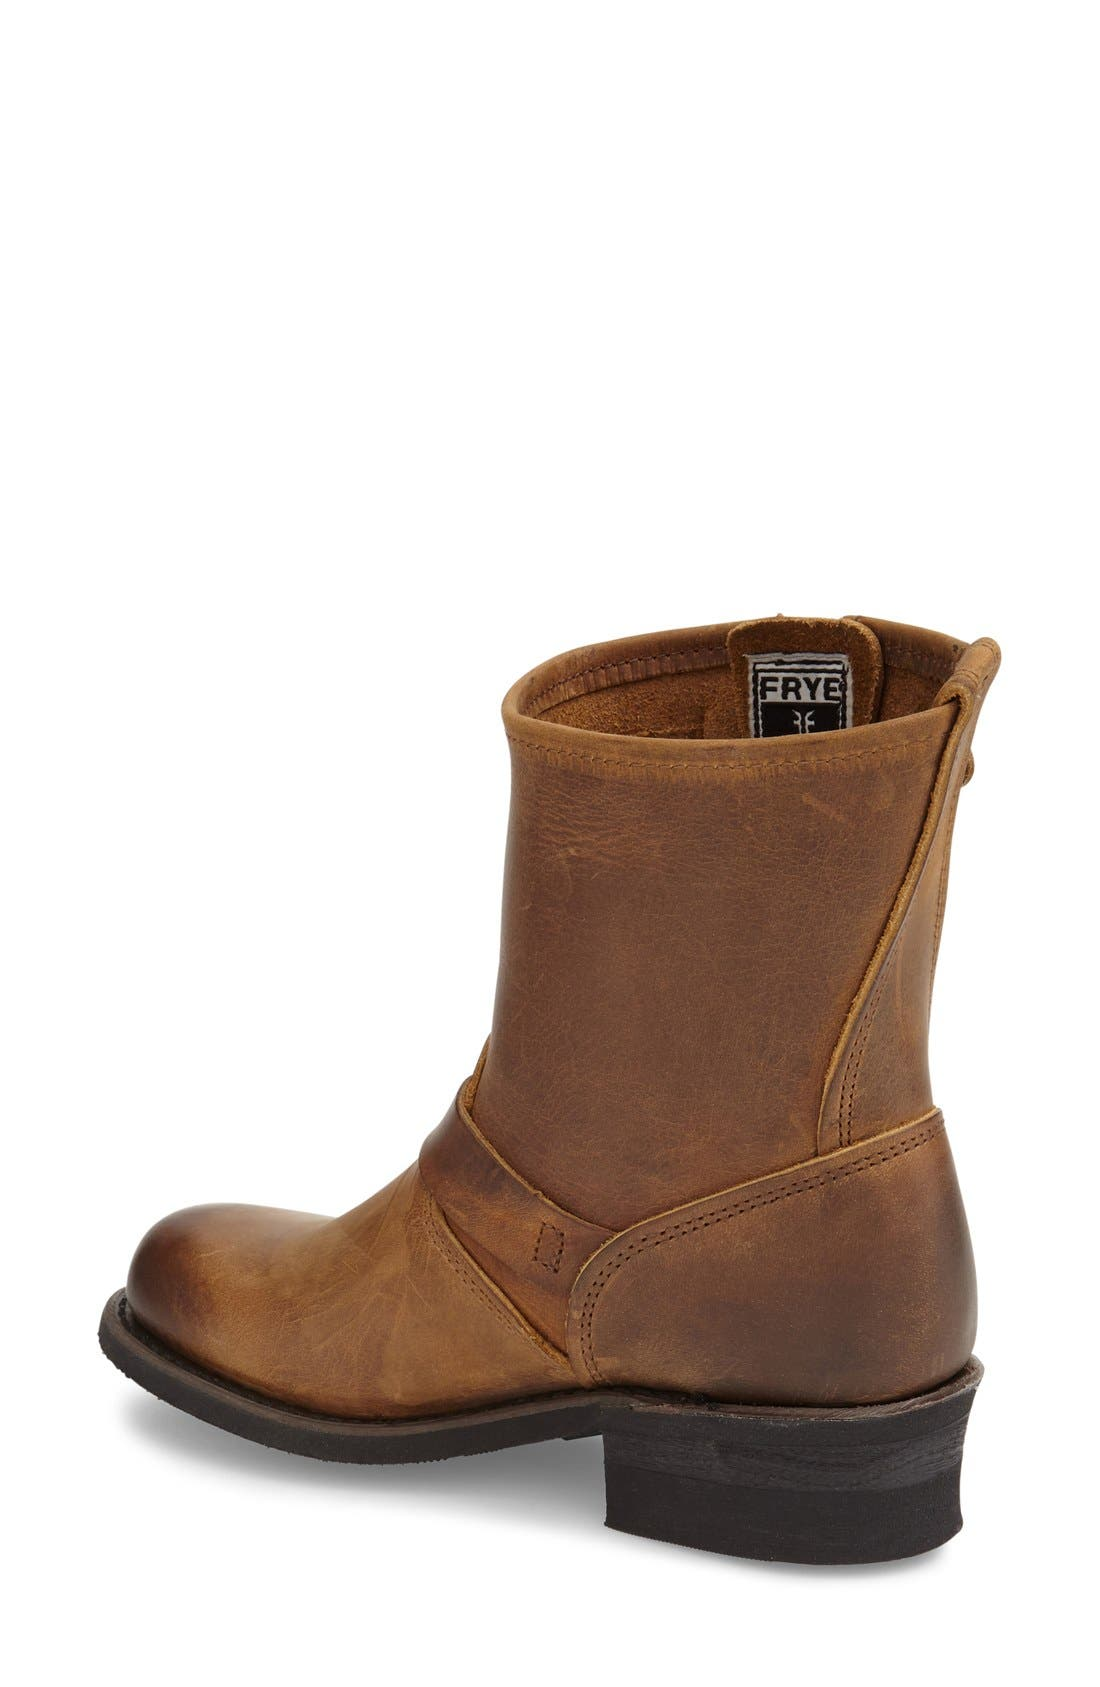 'Engineer 8R' Leather Boot,                             Alternate thumbnail 10, color,